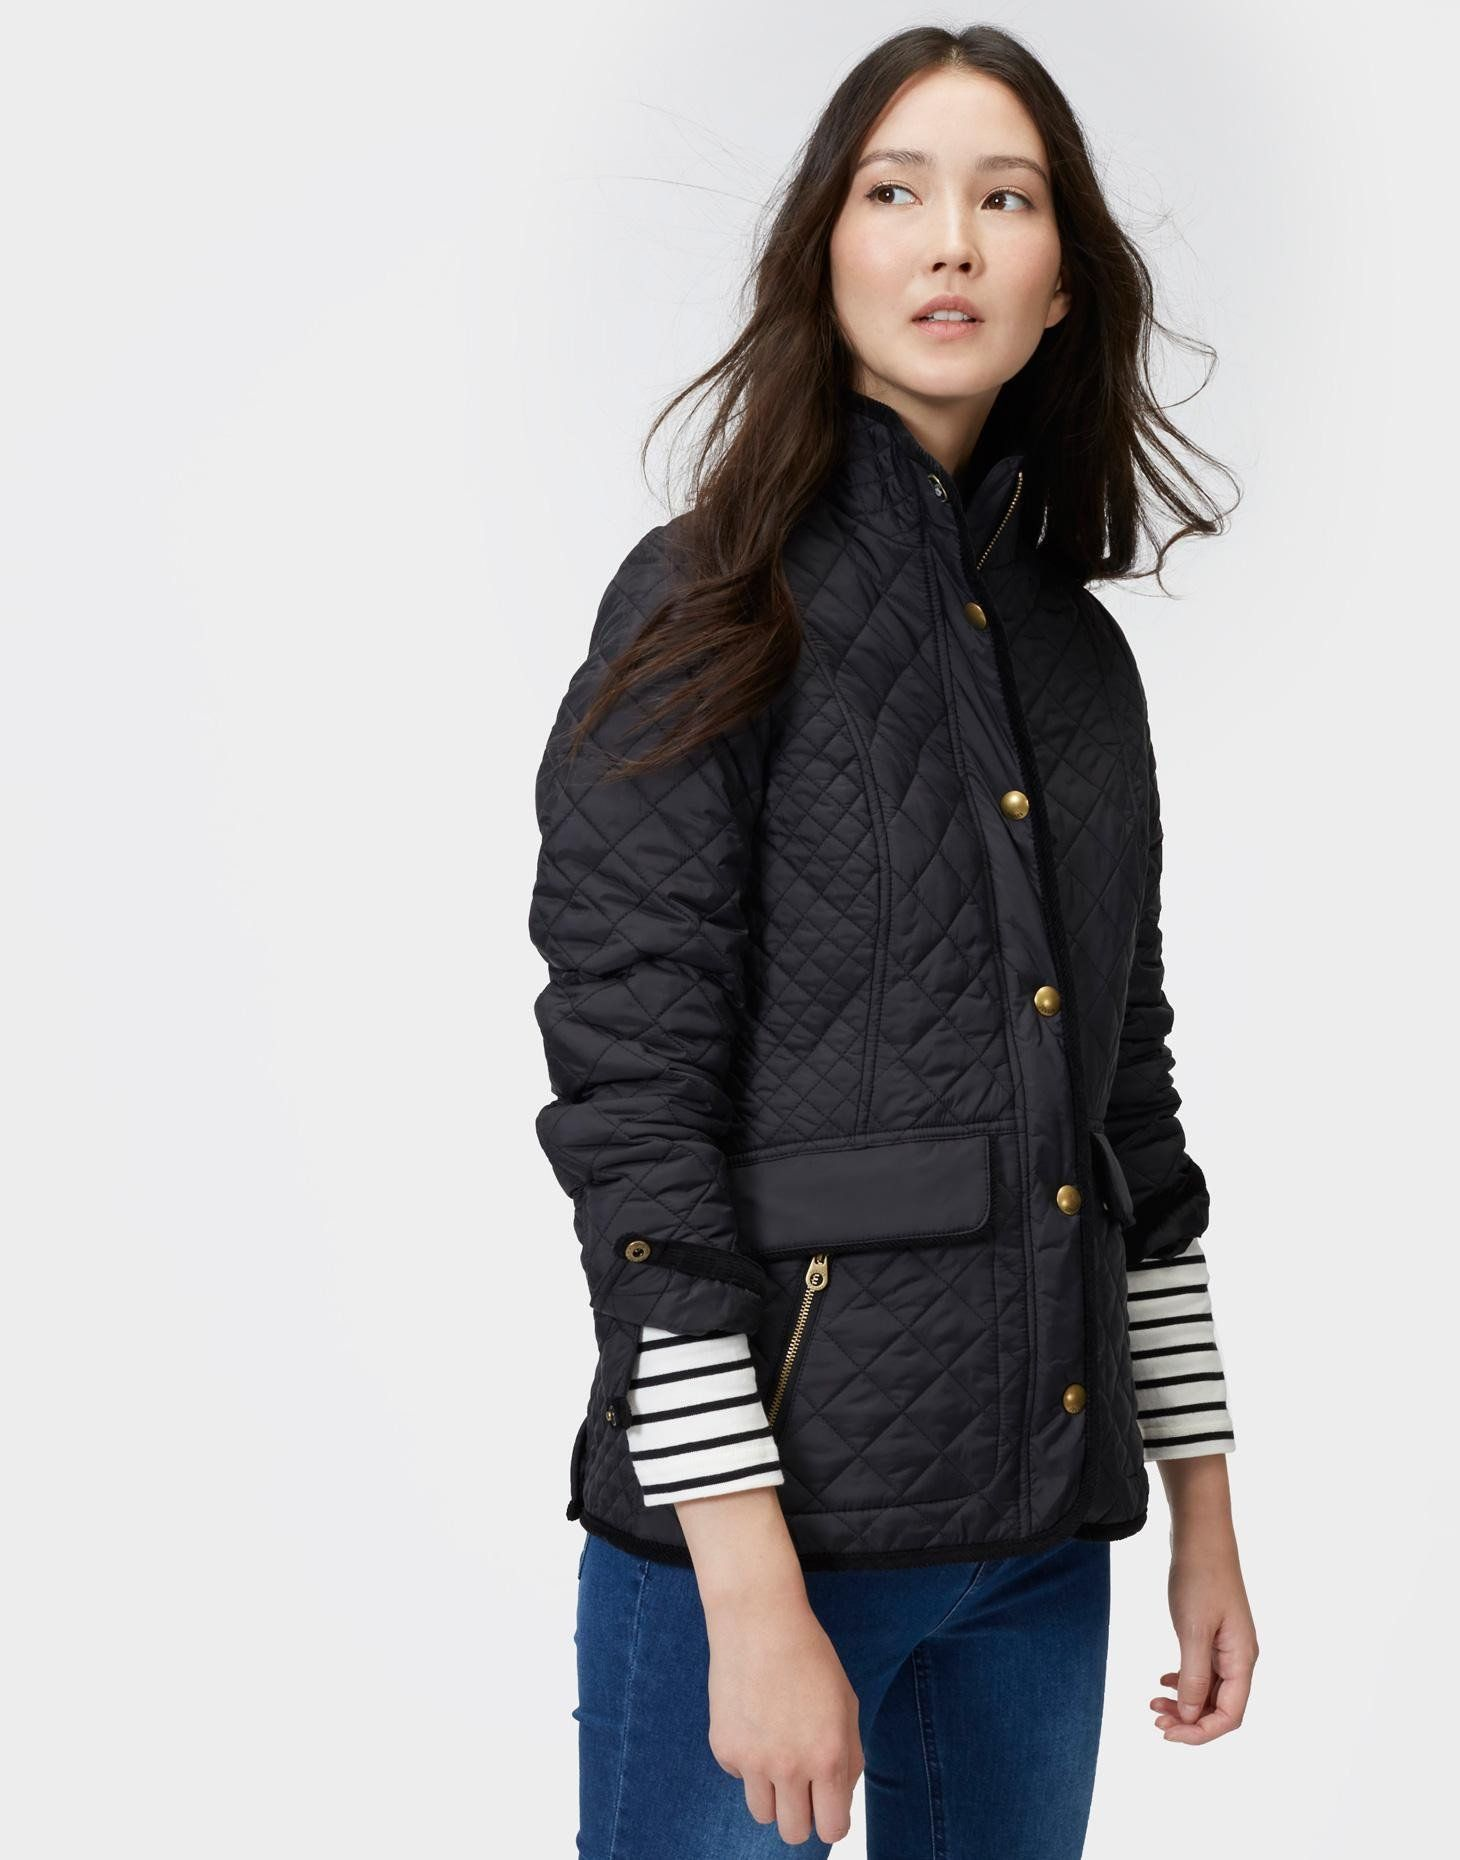 8e48f2a17 Joules Newdale Jacket - Black in 2019 | Products | Quilted jacket ...